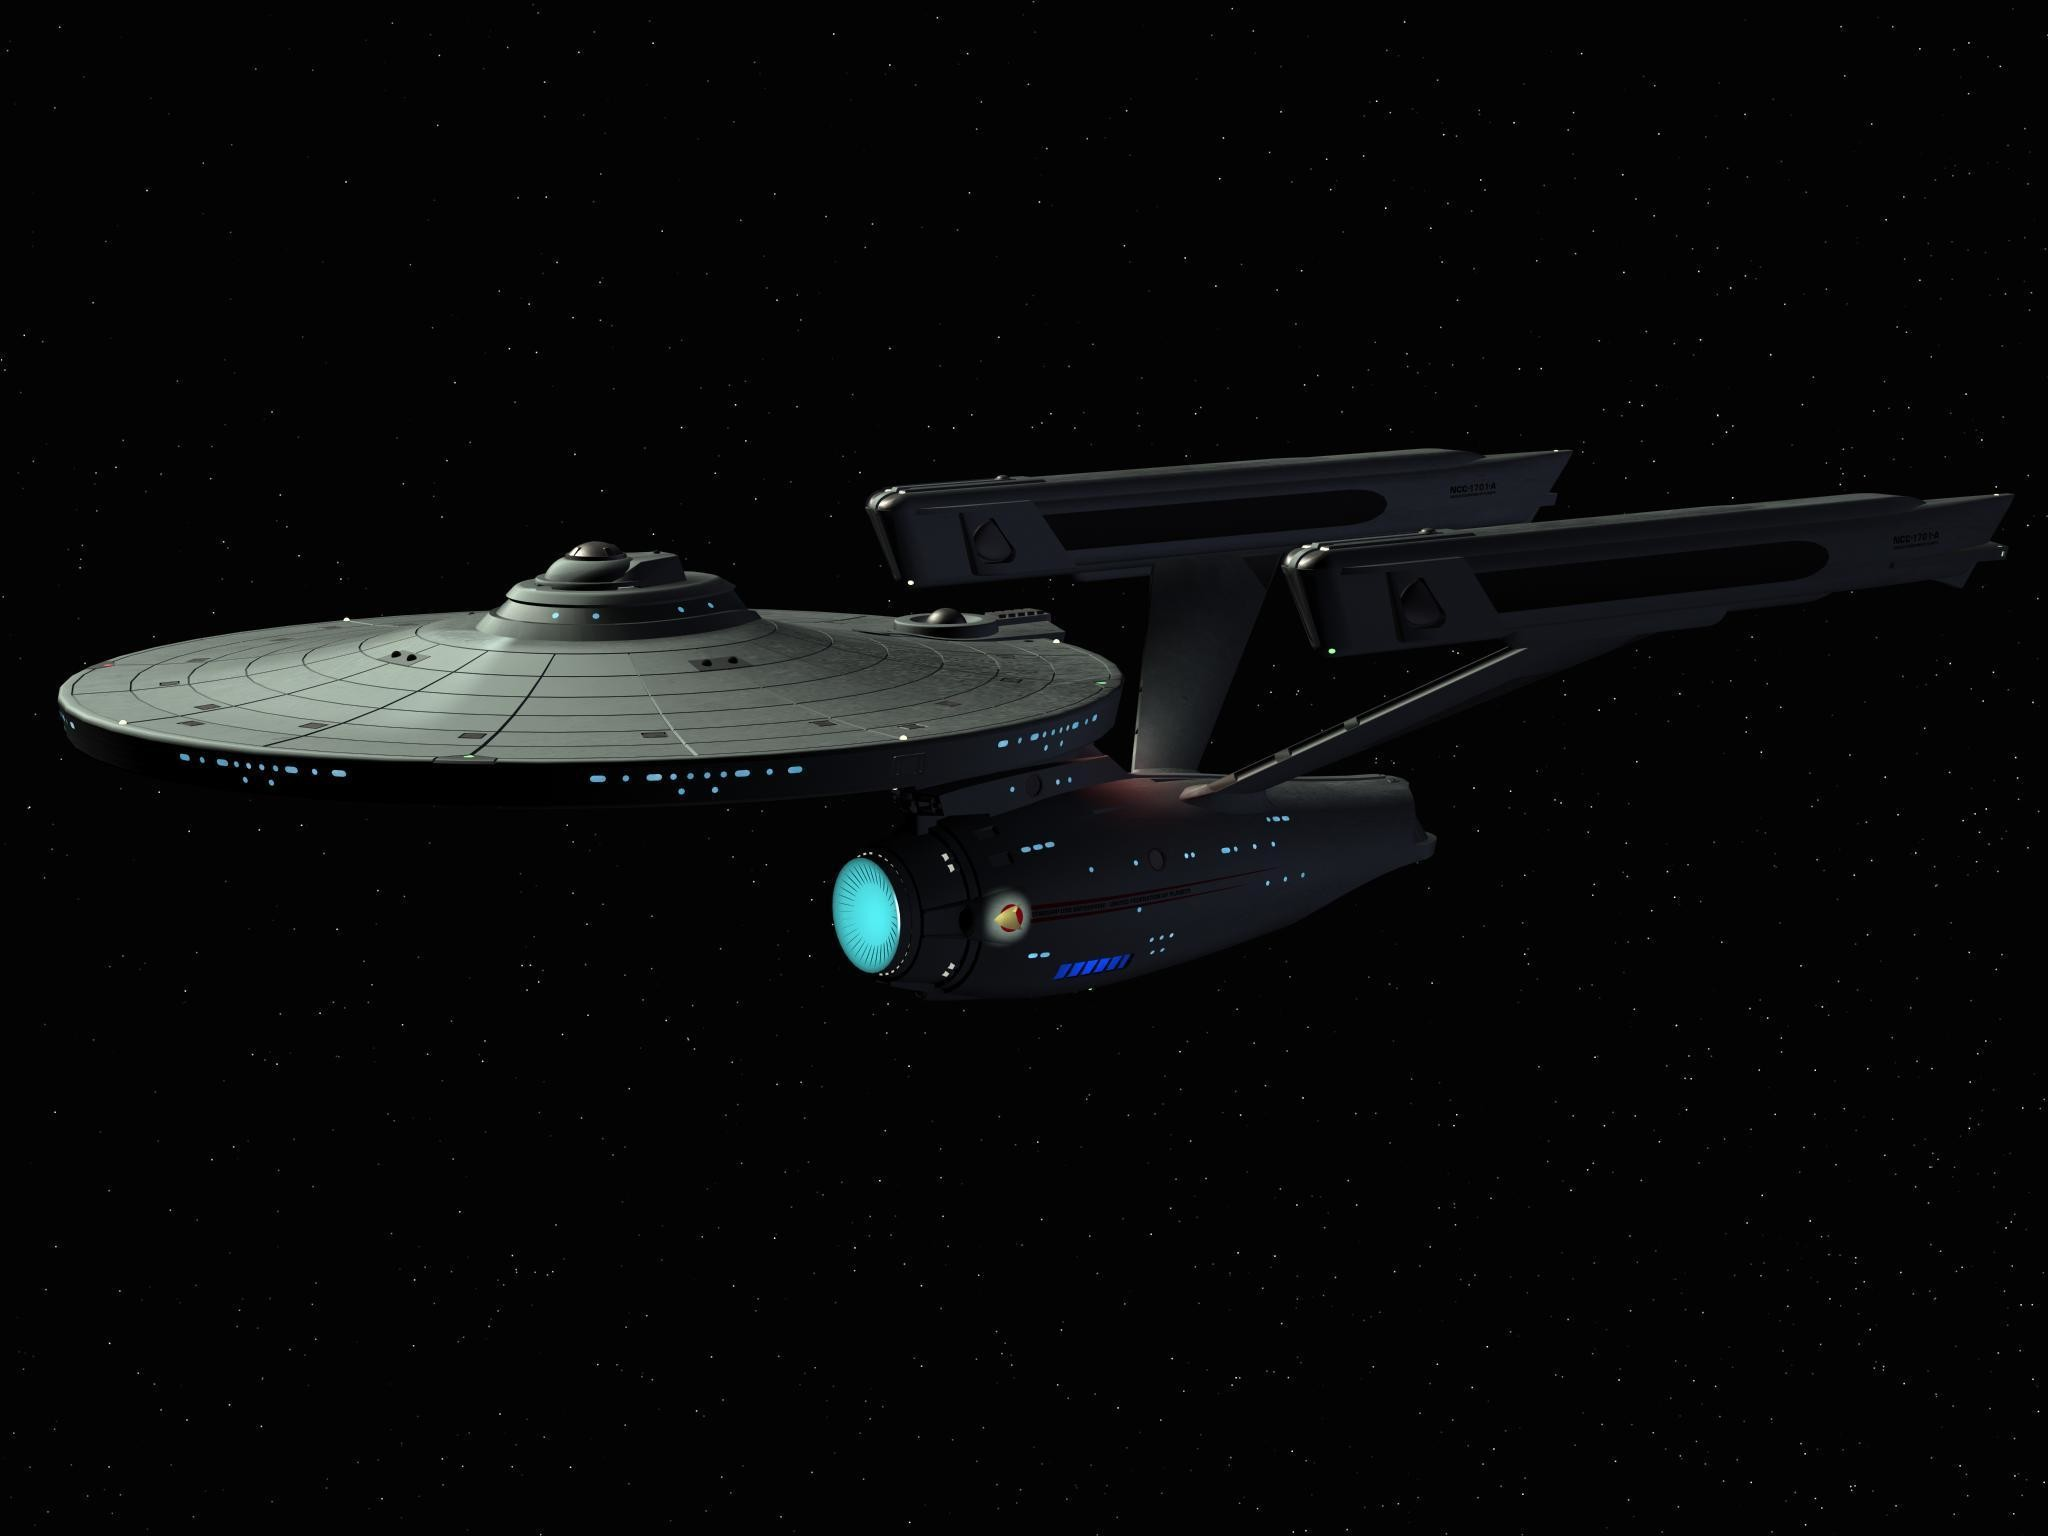 2048x1536 Star Trek The Original Series Wallpapers